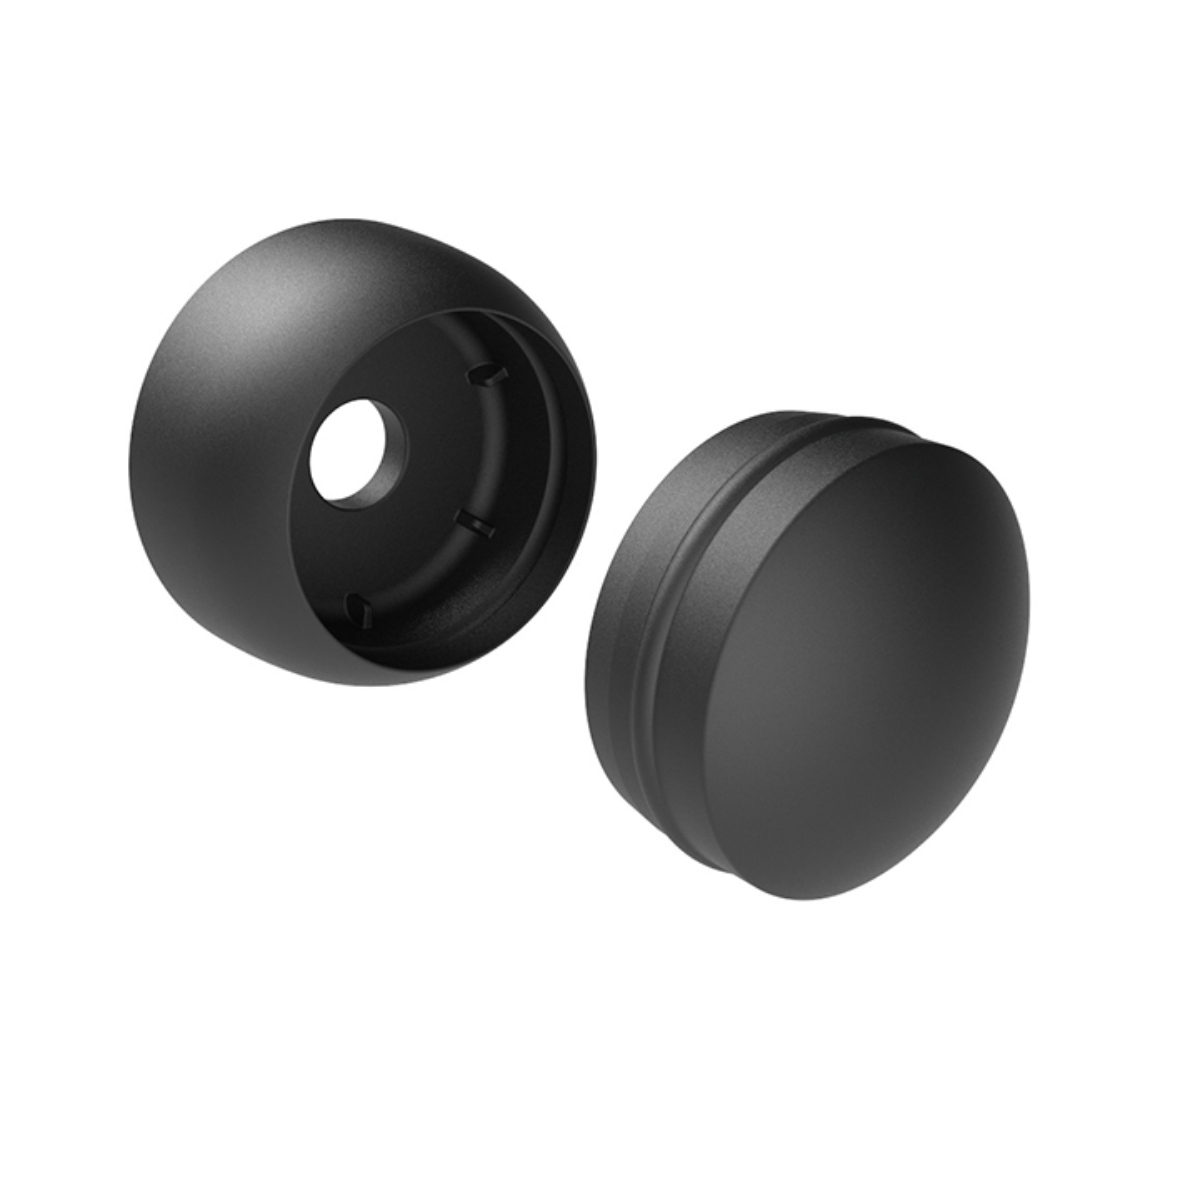 PLASTIC BOLT COVER (10pk) Black